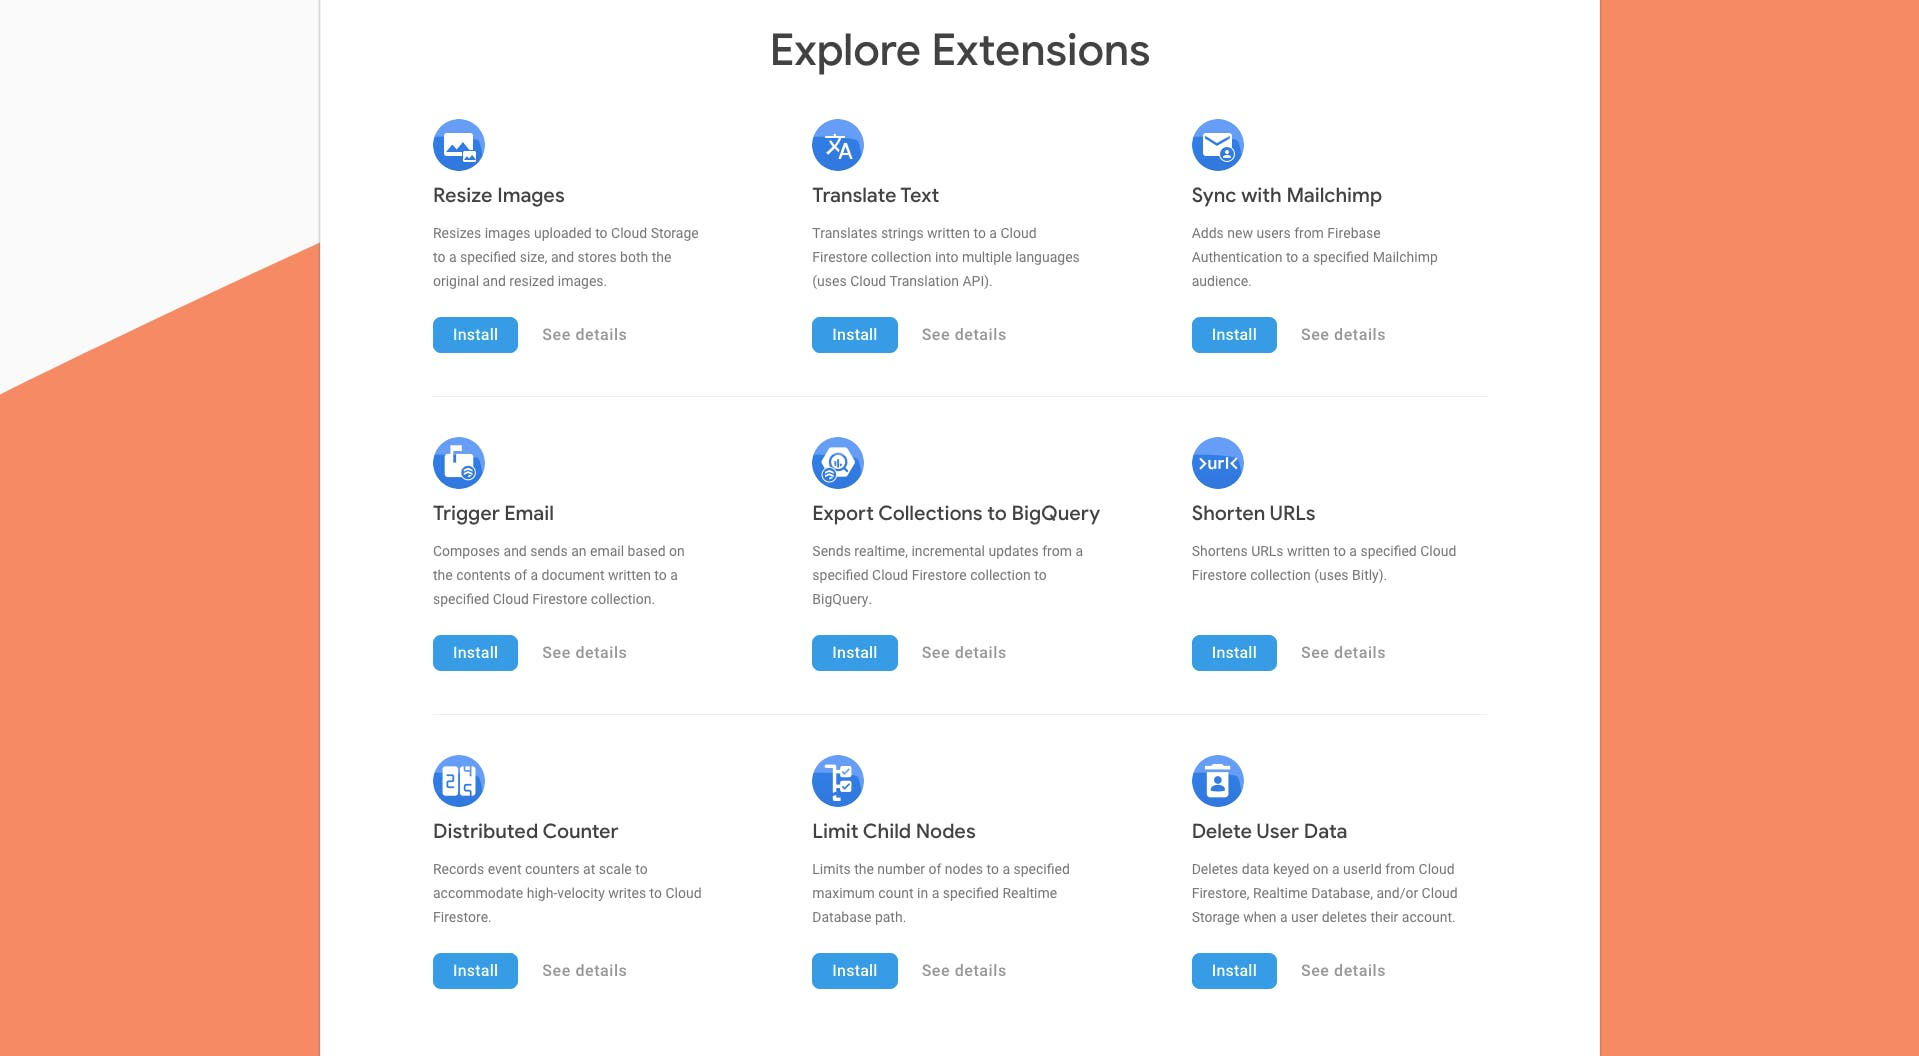 screencapture-firebase-google-products-extensions-2019-09-27-06_38_46.png